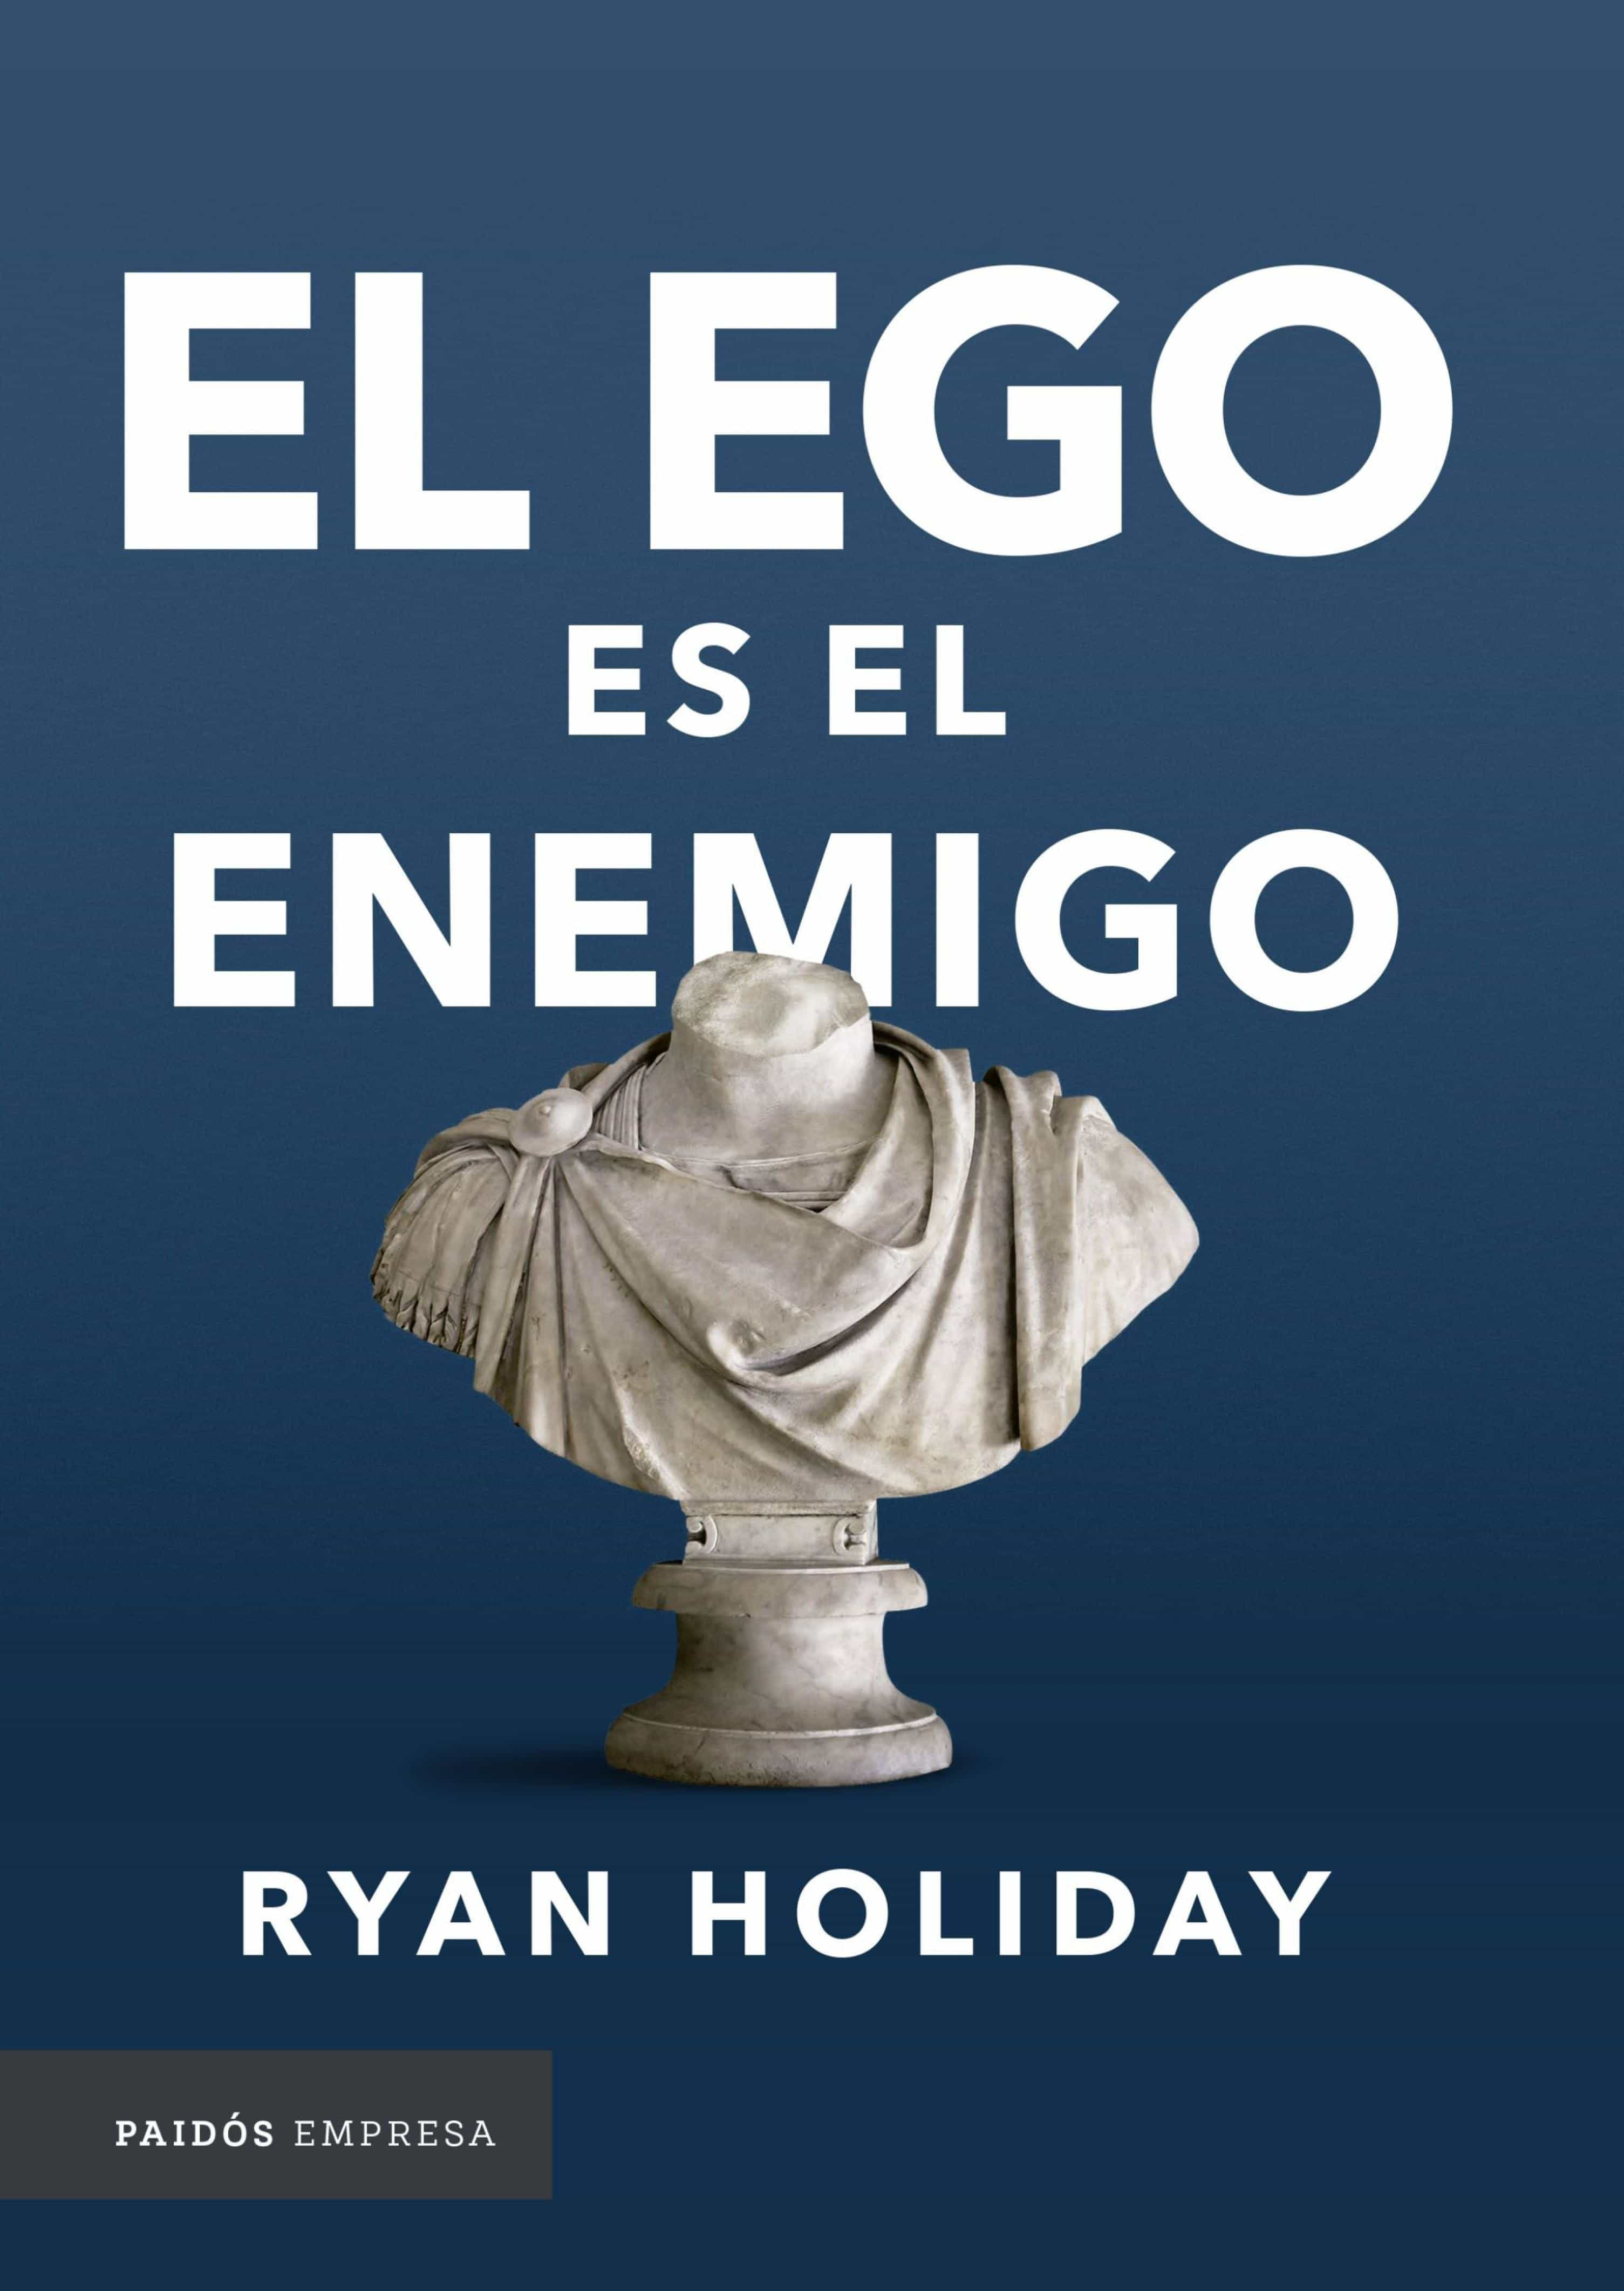 Libros Pdf Gratis Sin Registro El Ego Es El Enemigo Ebook Ryan Holiday Descargar Libro Pdf O Epub 9789584260123